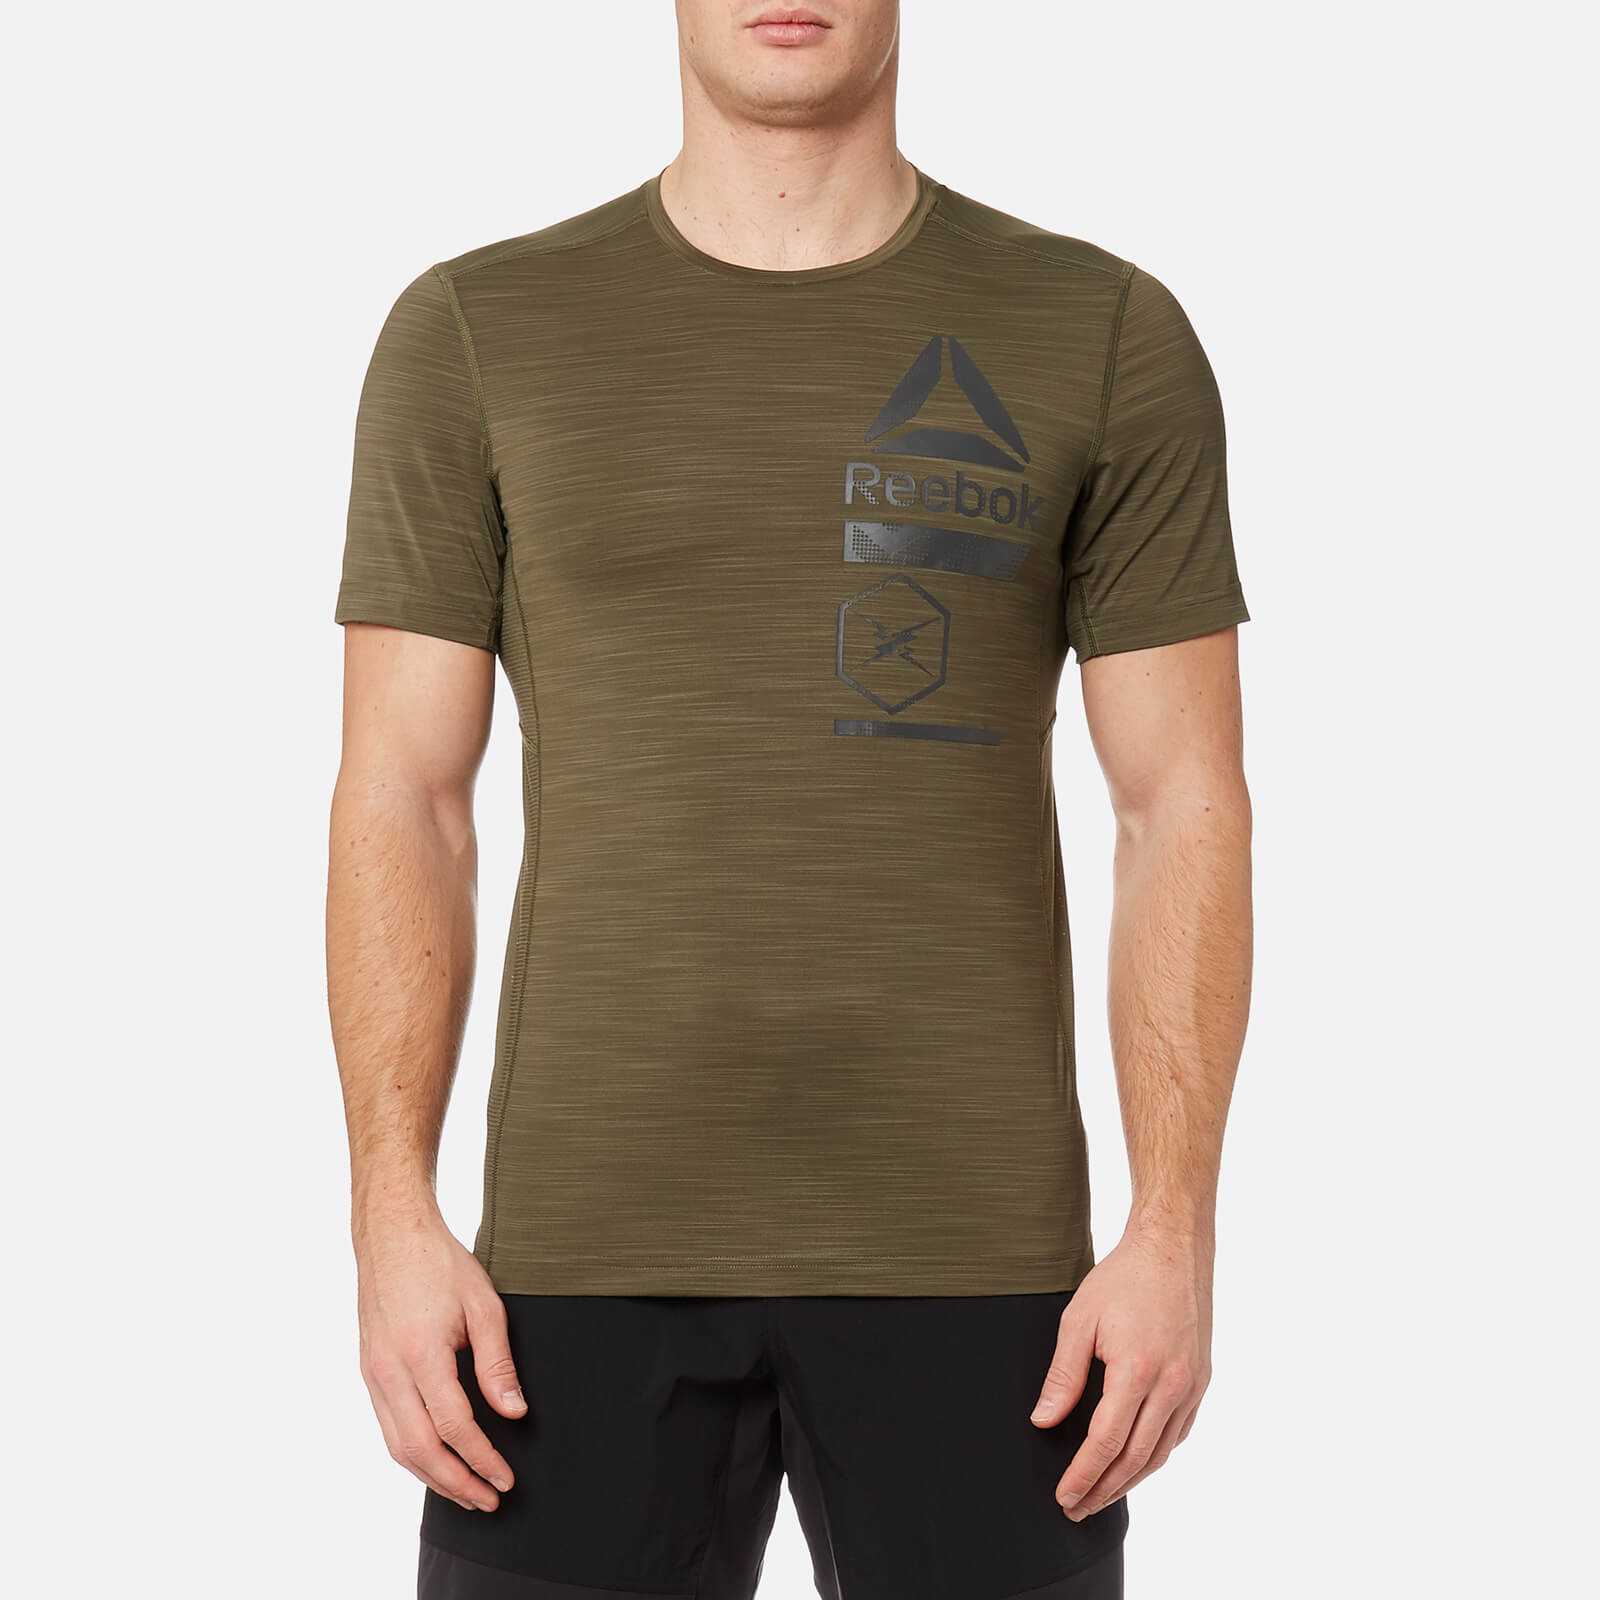 7d5cd29a Reebok Men's Activchill Zoned Graphic Short Sleeve T-Shirt - Army Green  Clothing | TheHut.com